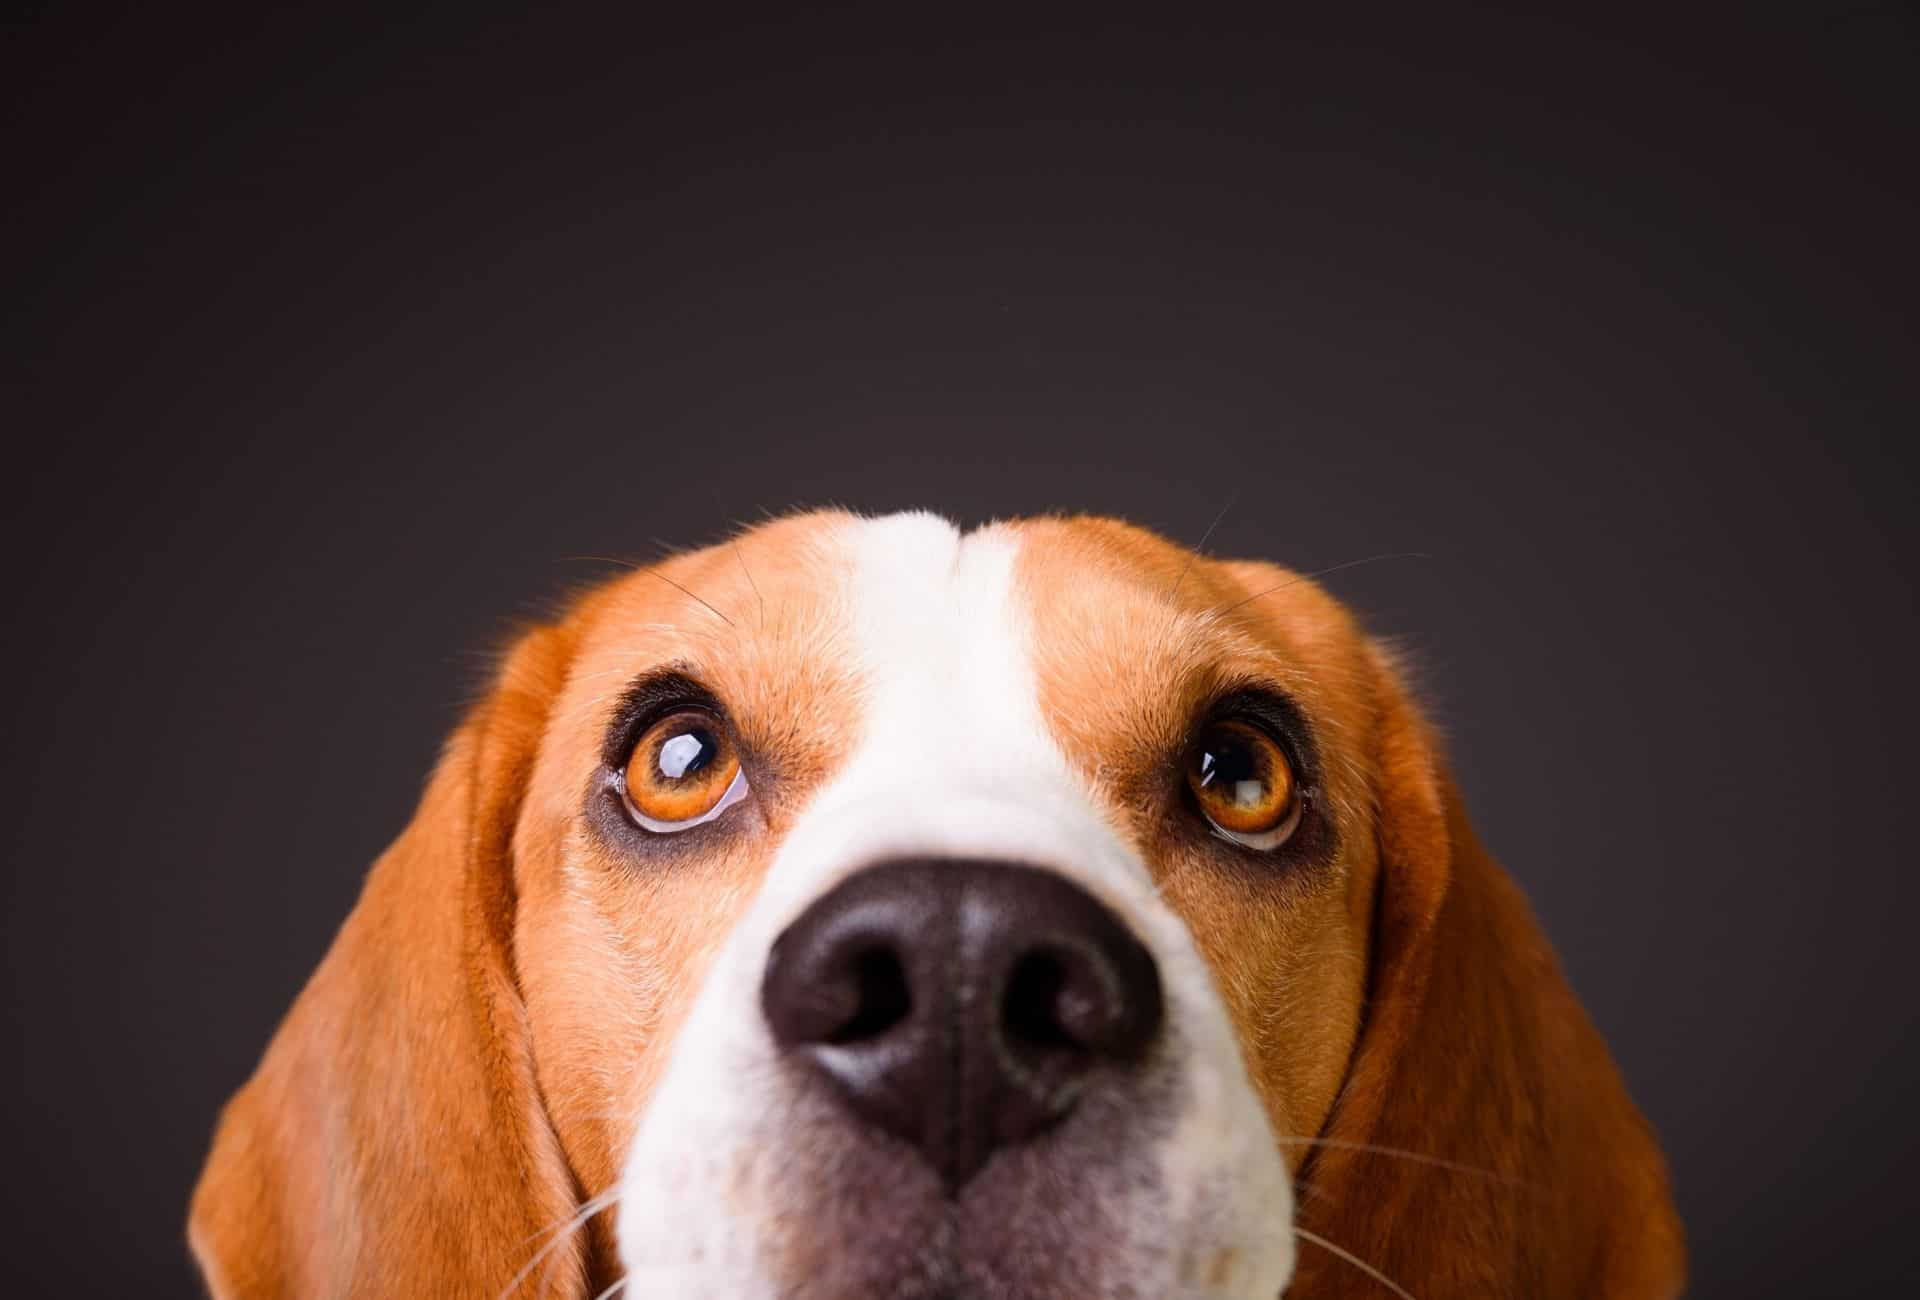 Beagle head with shining brown eyes in front of black background.